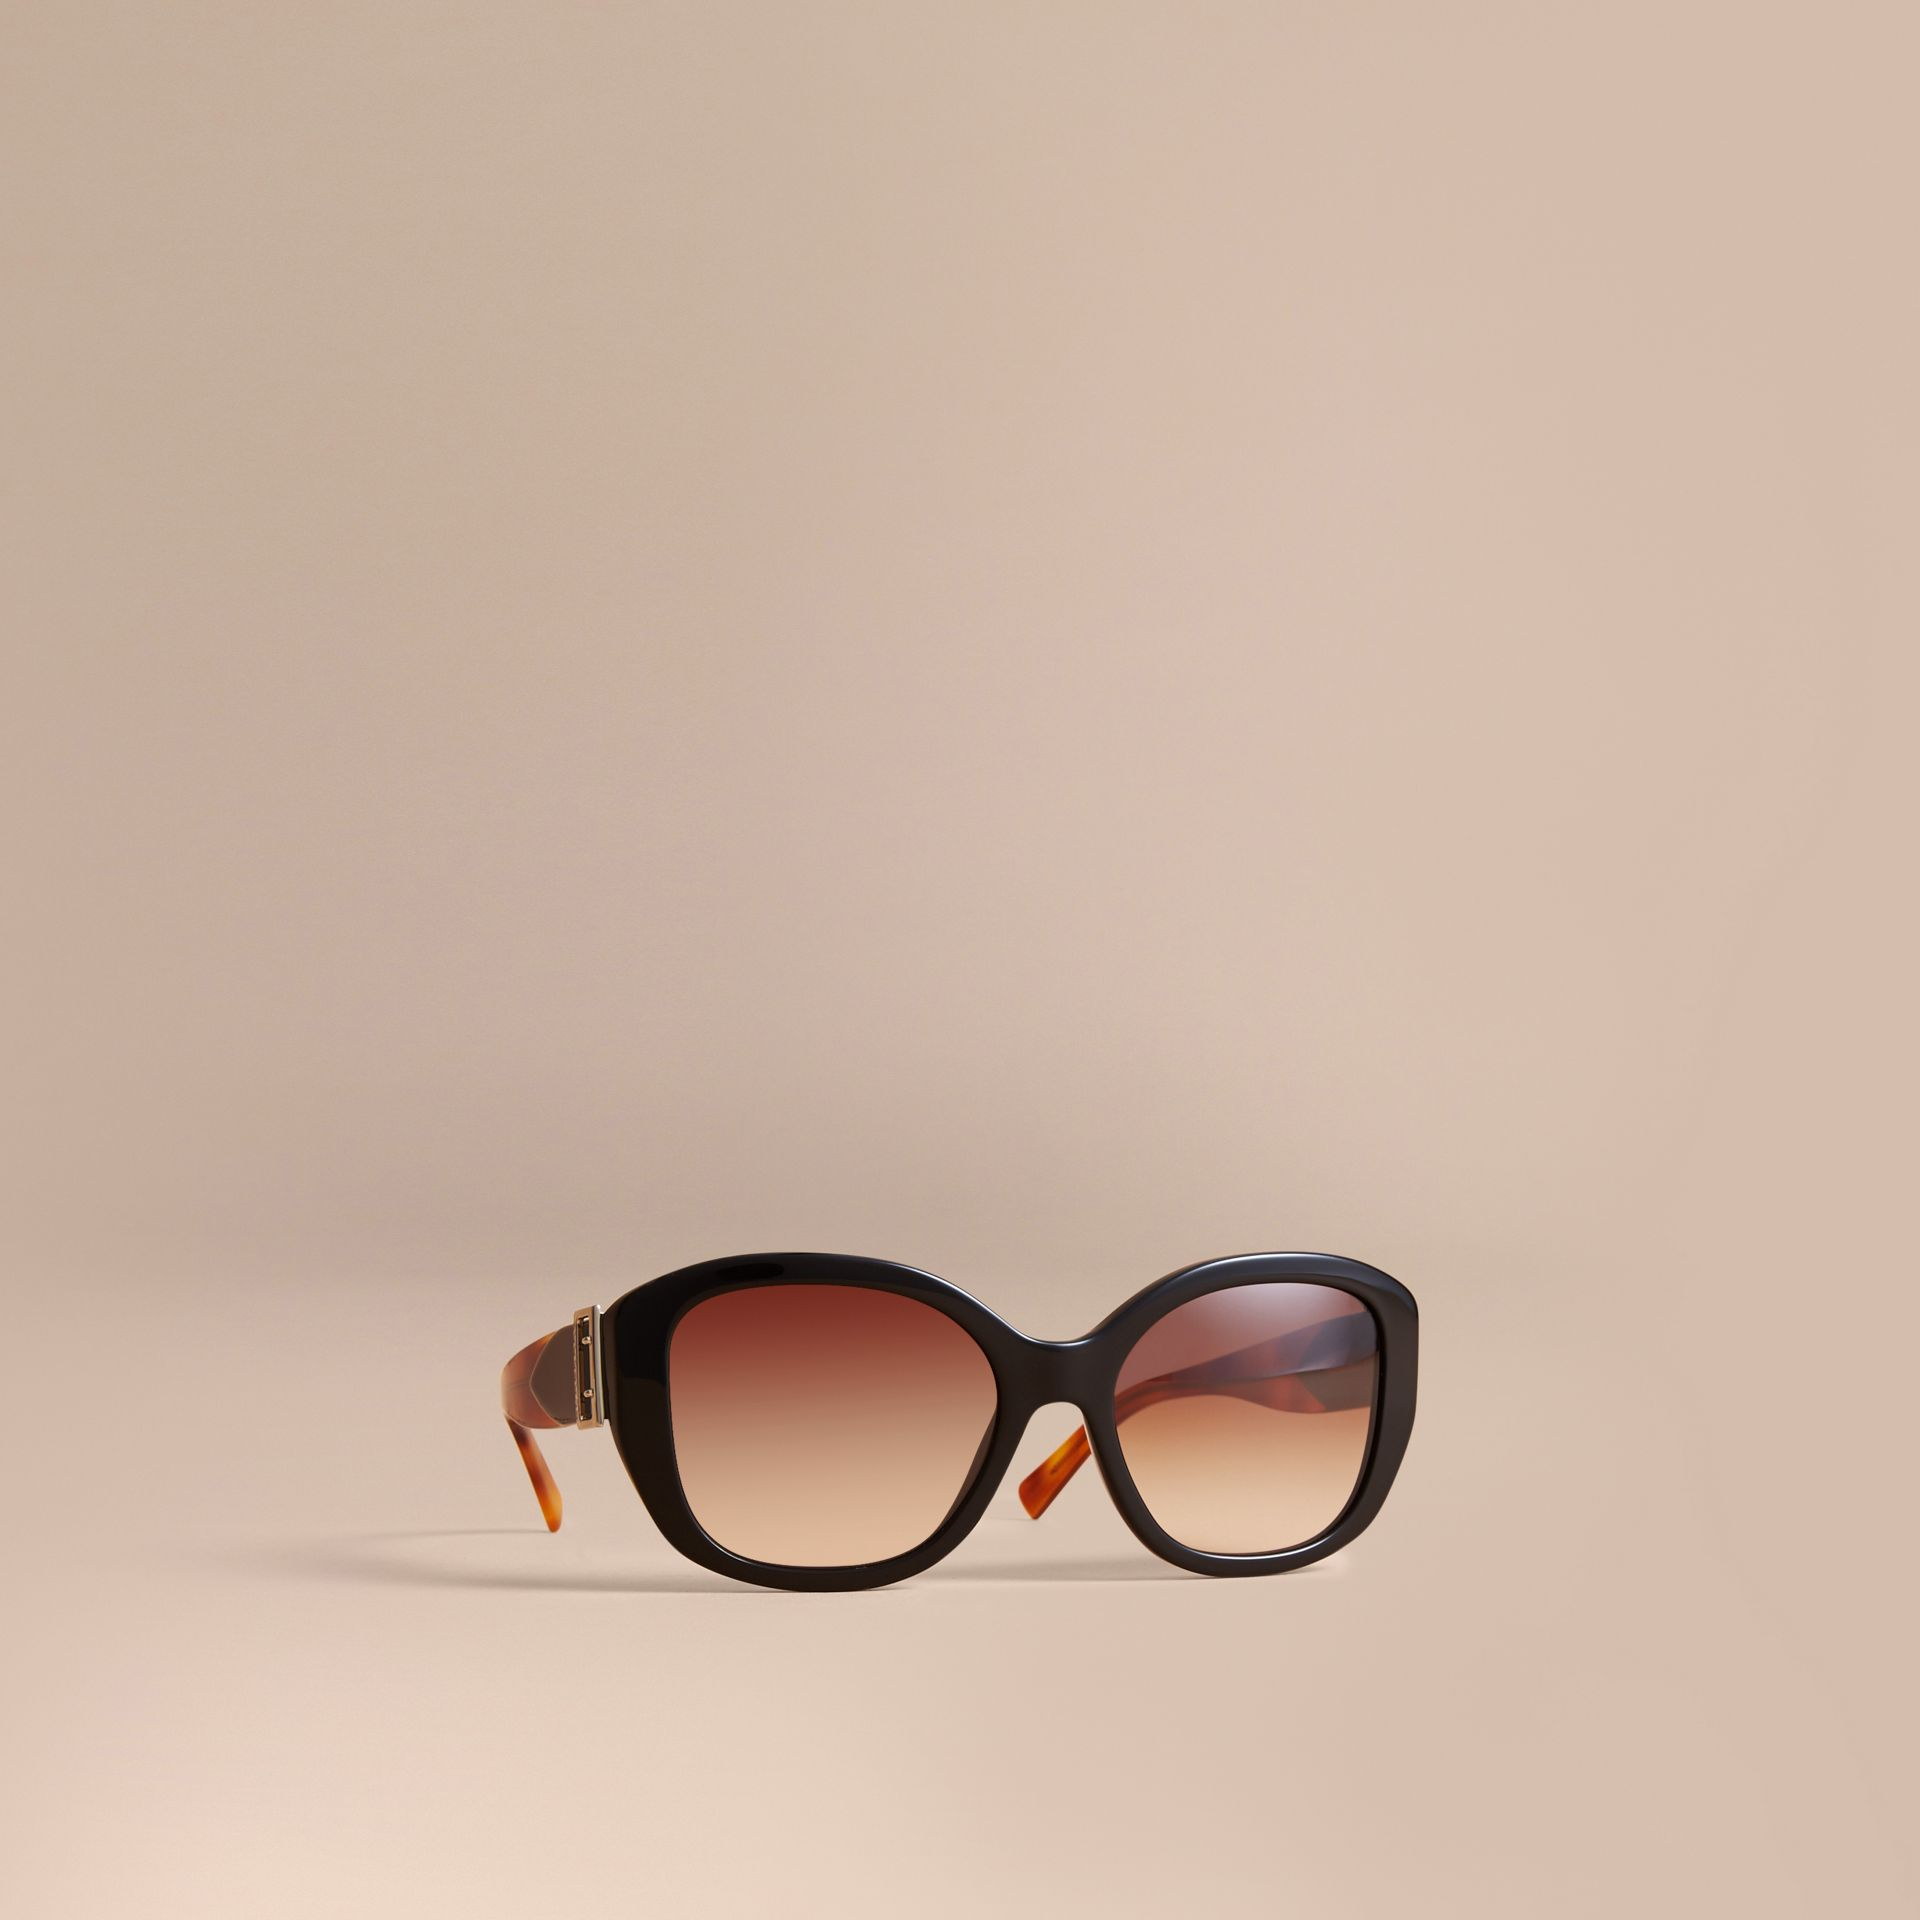 Buckle Detail Oversize Square Frame Sunglasses in Black - Women | Burberry Australia - gallery image 0